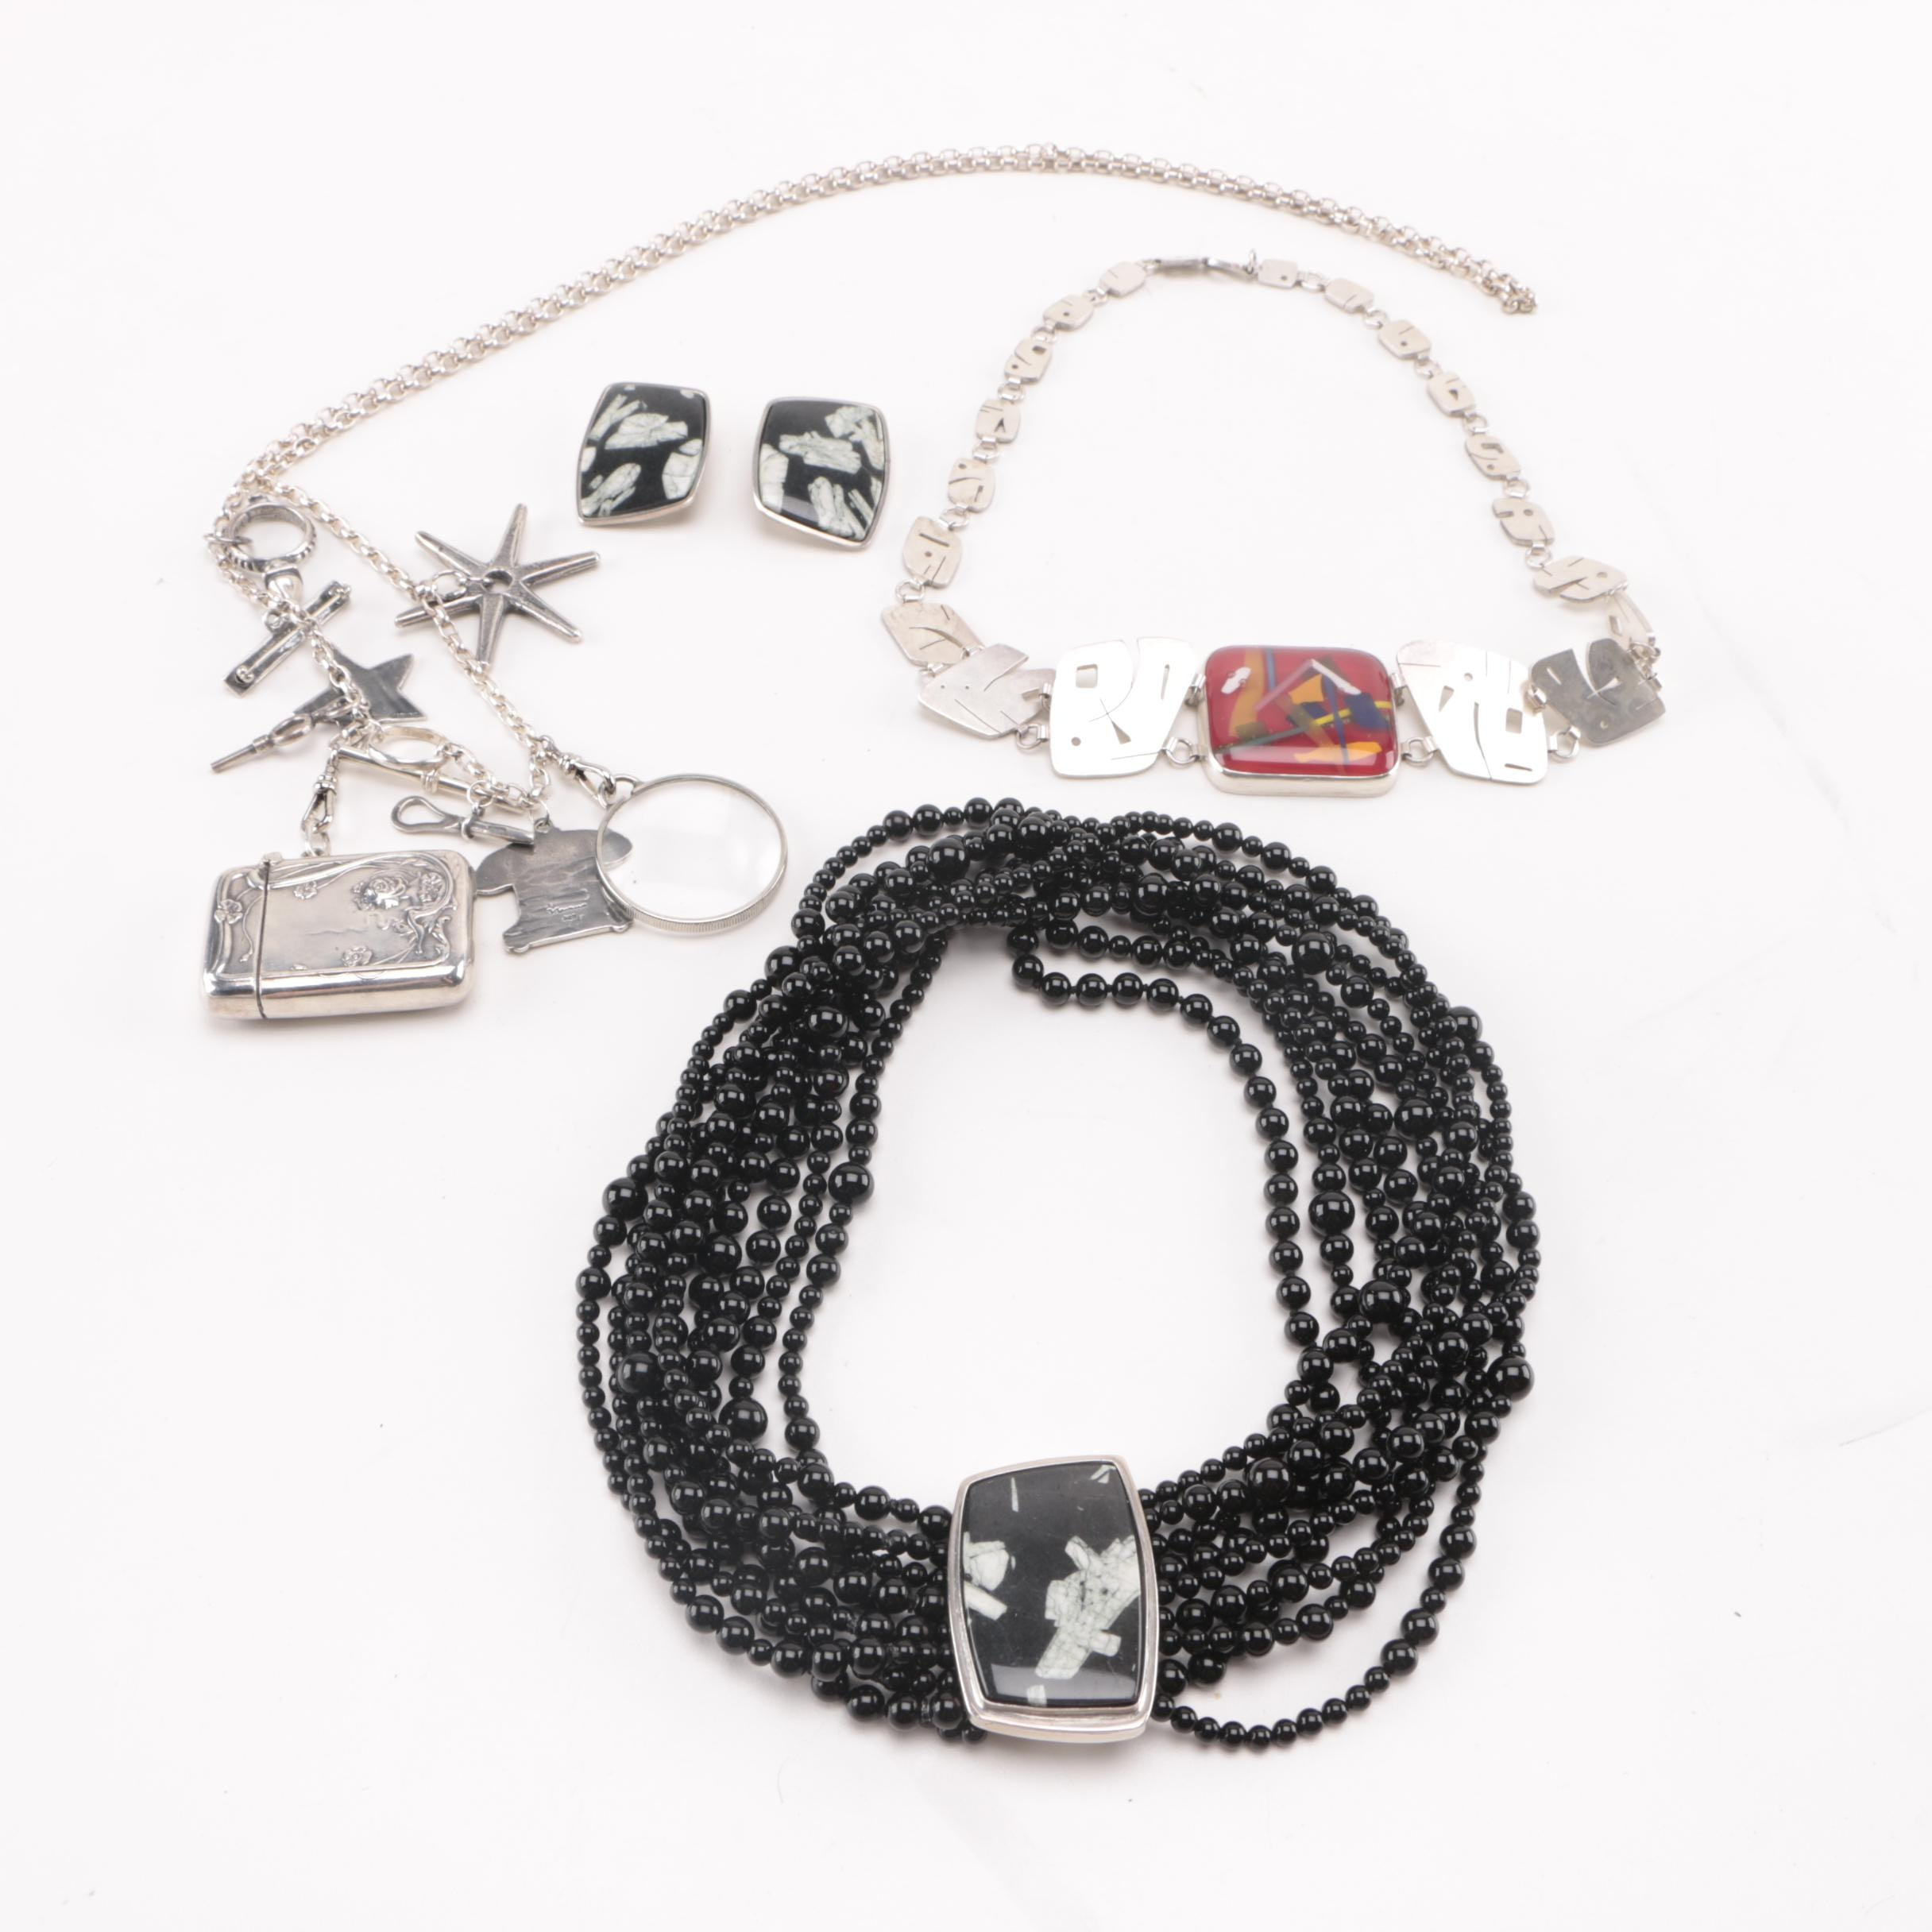 Sterling Silver Necklaces and Earrings Including Signed Pieces